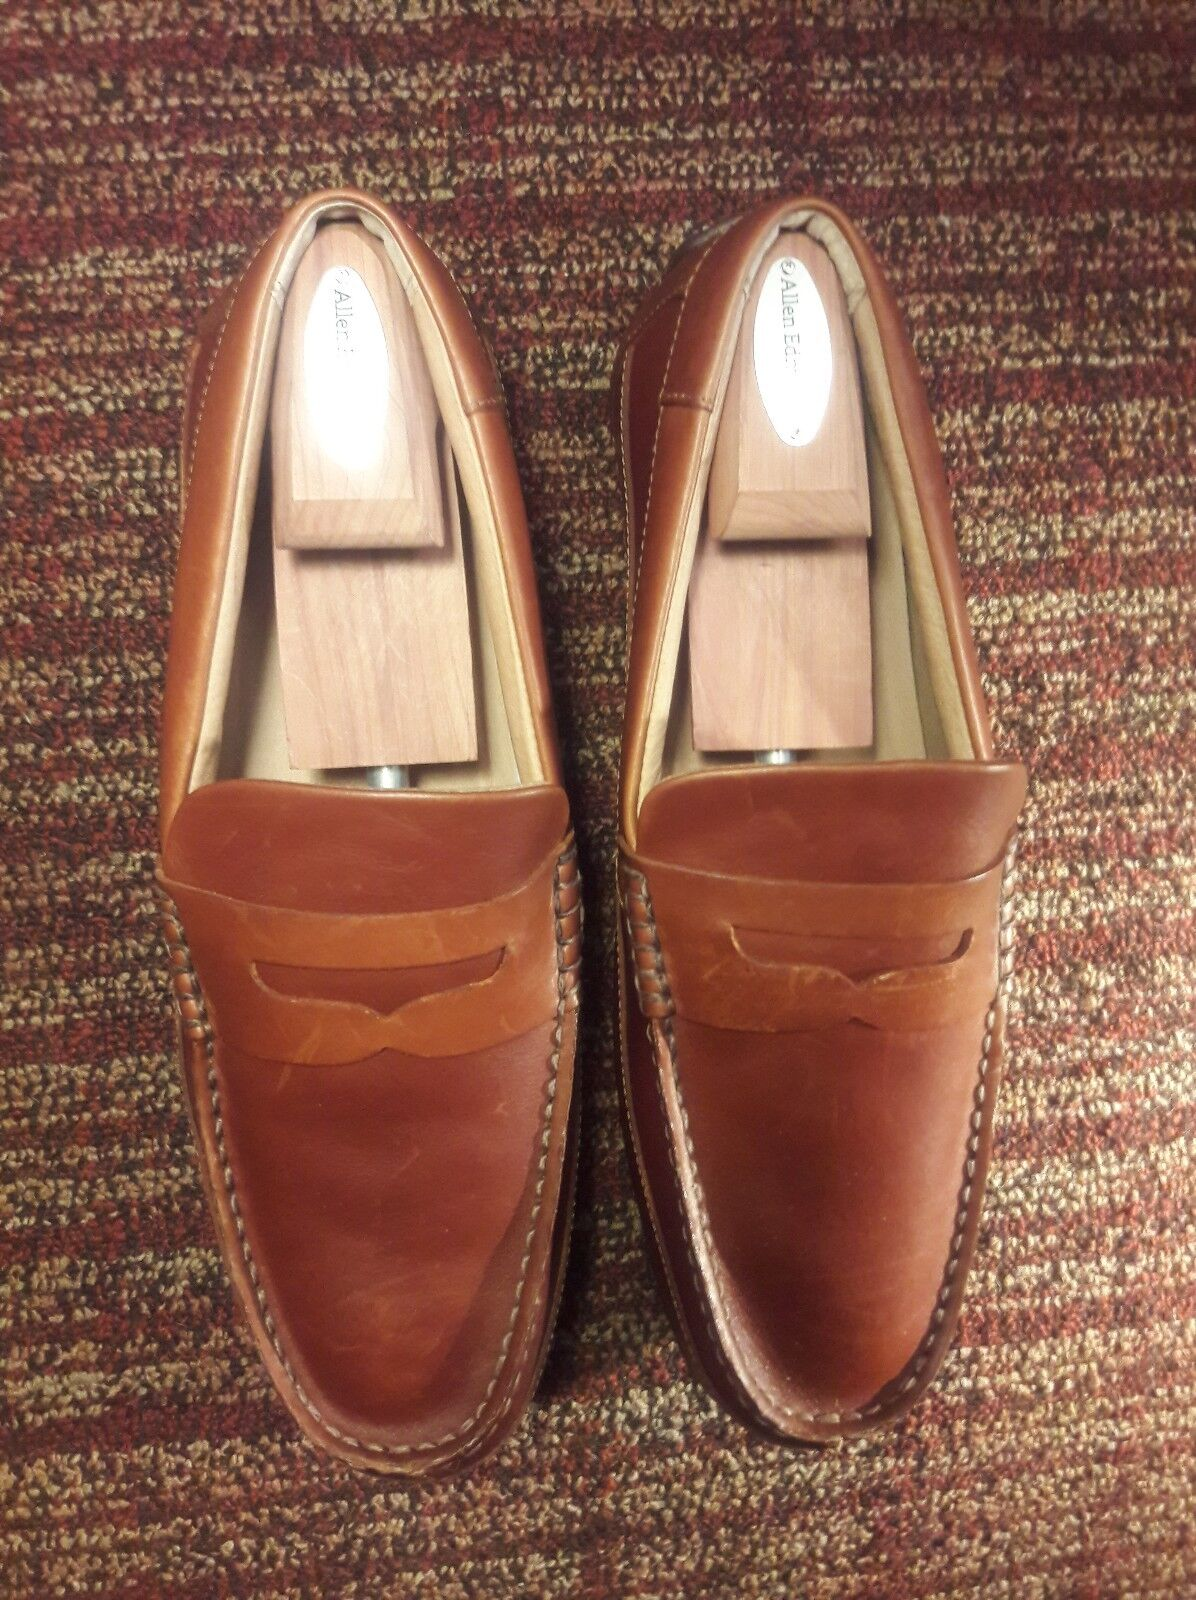 Sperry Top-Sider Men's Slip-On Hampden Penny Loafers STS10721 NEW Sz 13 M